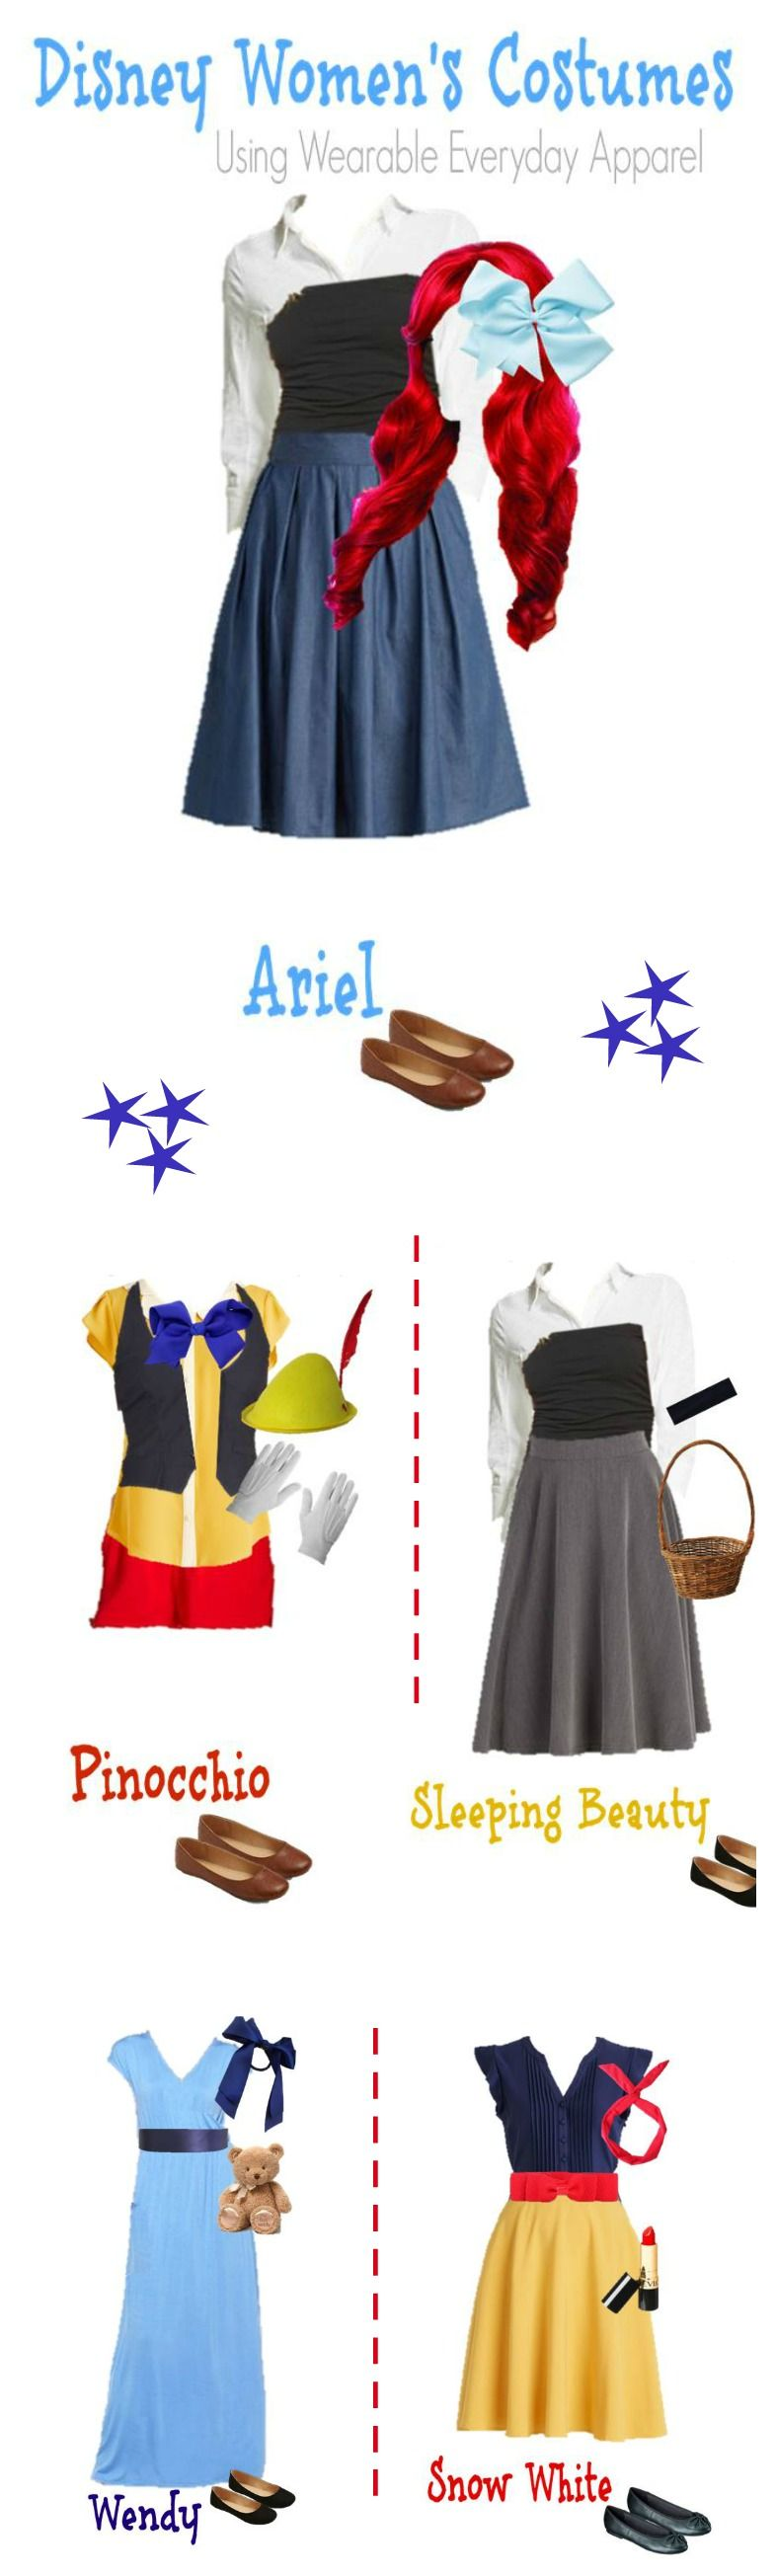 Halloween Disney Costumes Using Items In Your Closet Disney Costumes Cute Halloween Costumes Disney Halloween Costumes